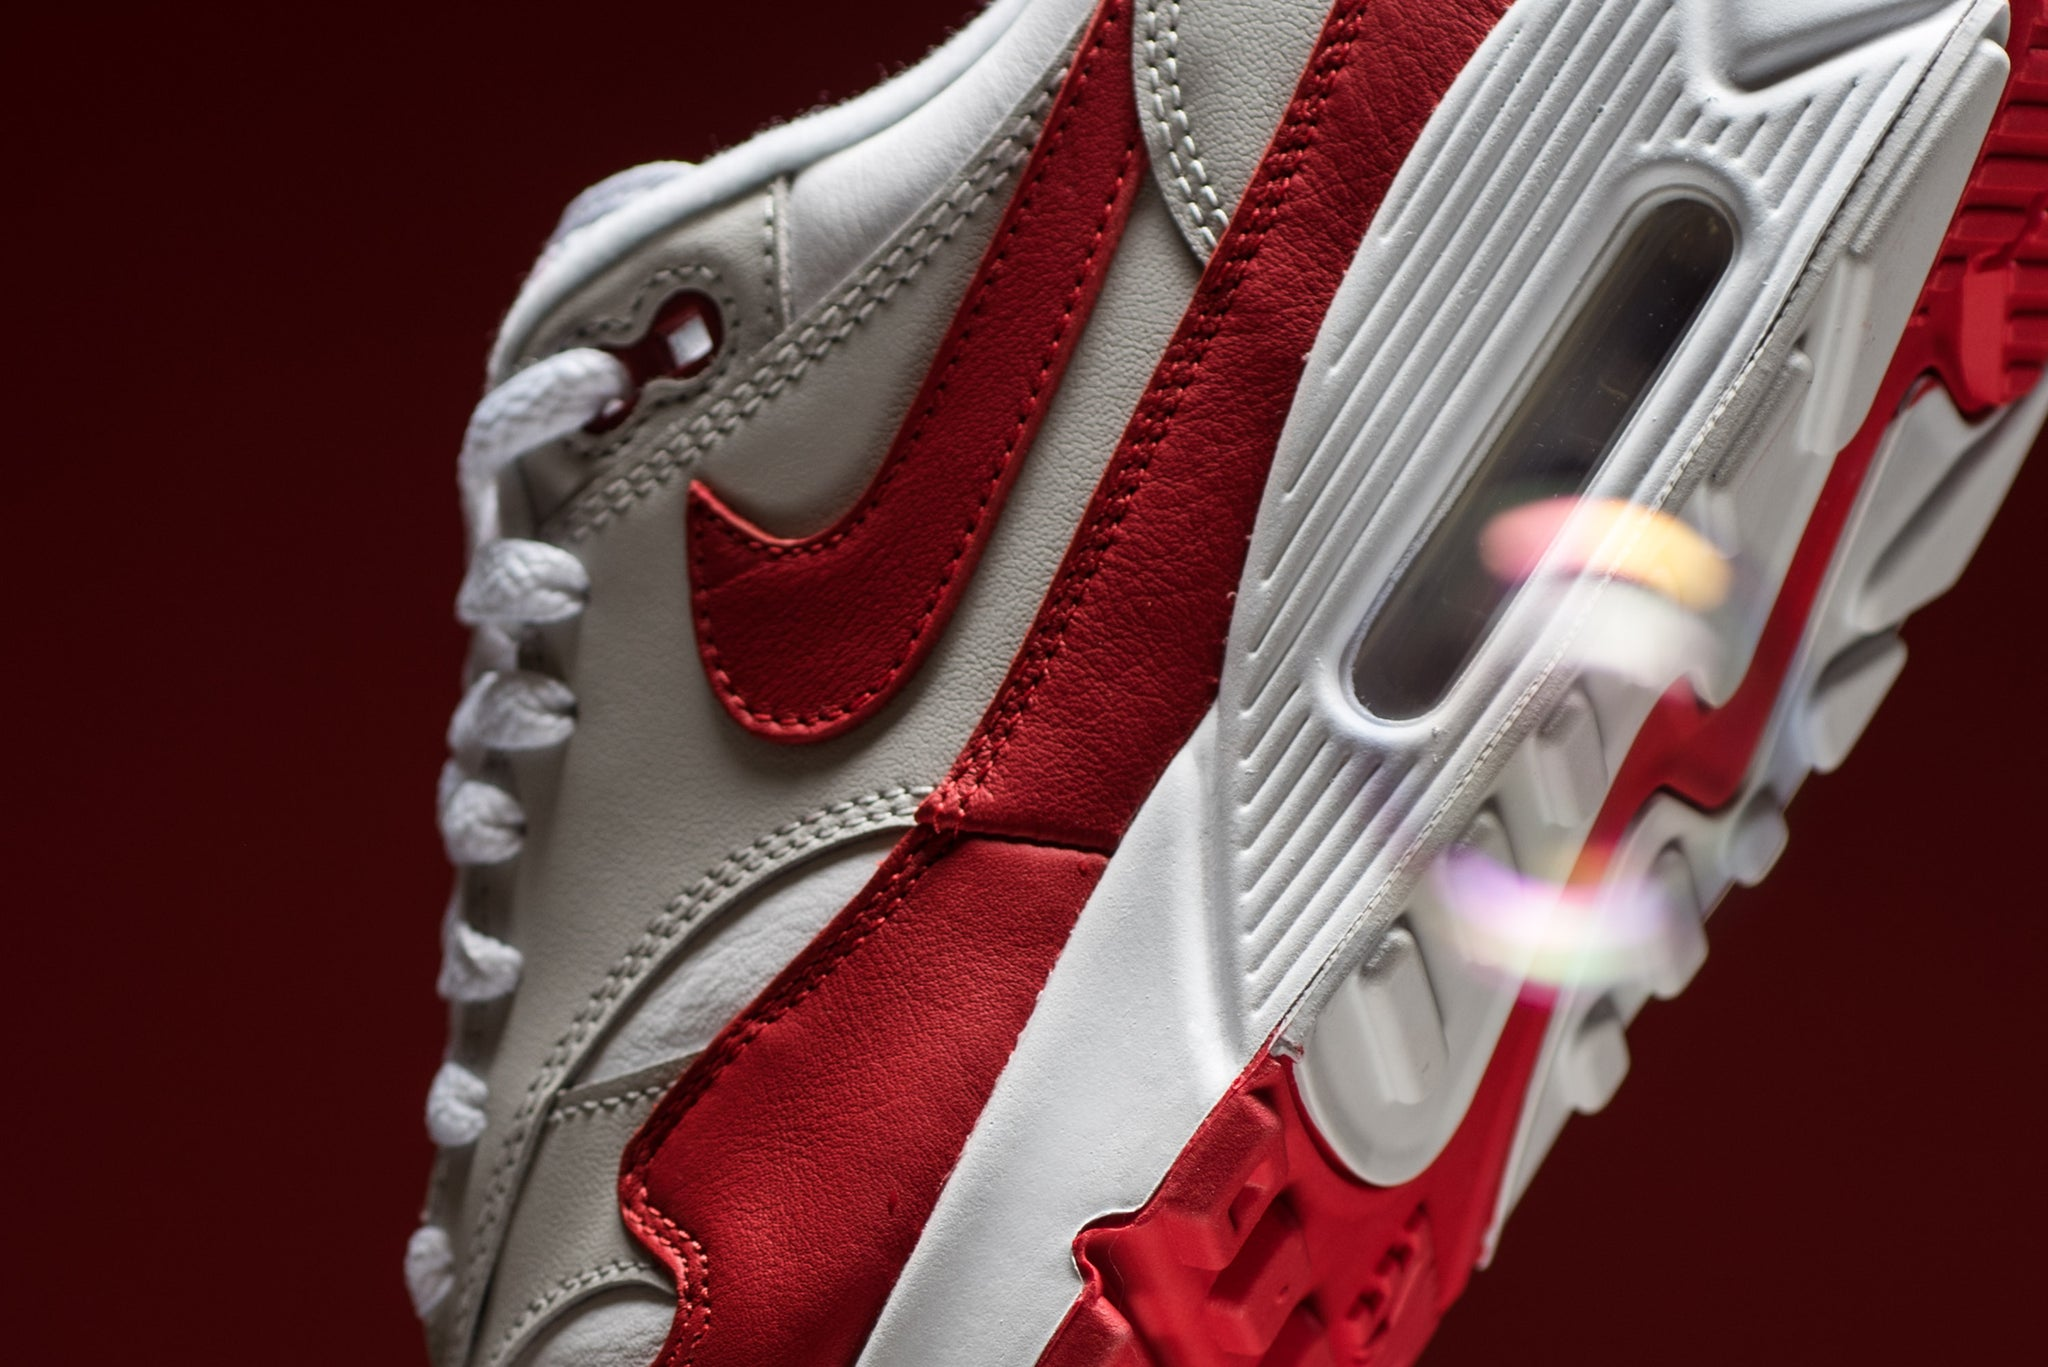 wholesale air max 97 hyperfuse for sale houston tx 3c19e 79fd2